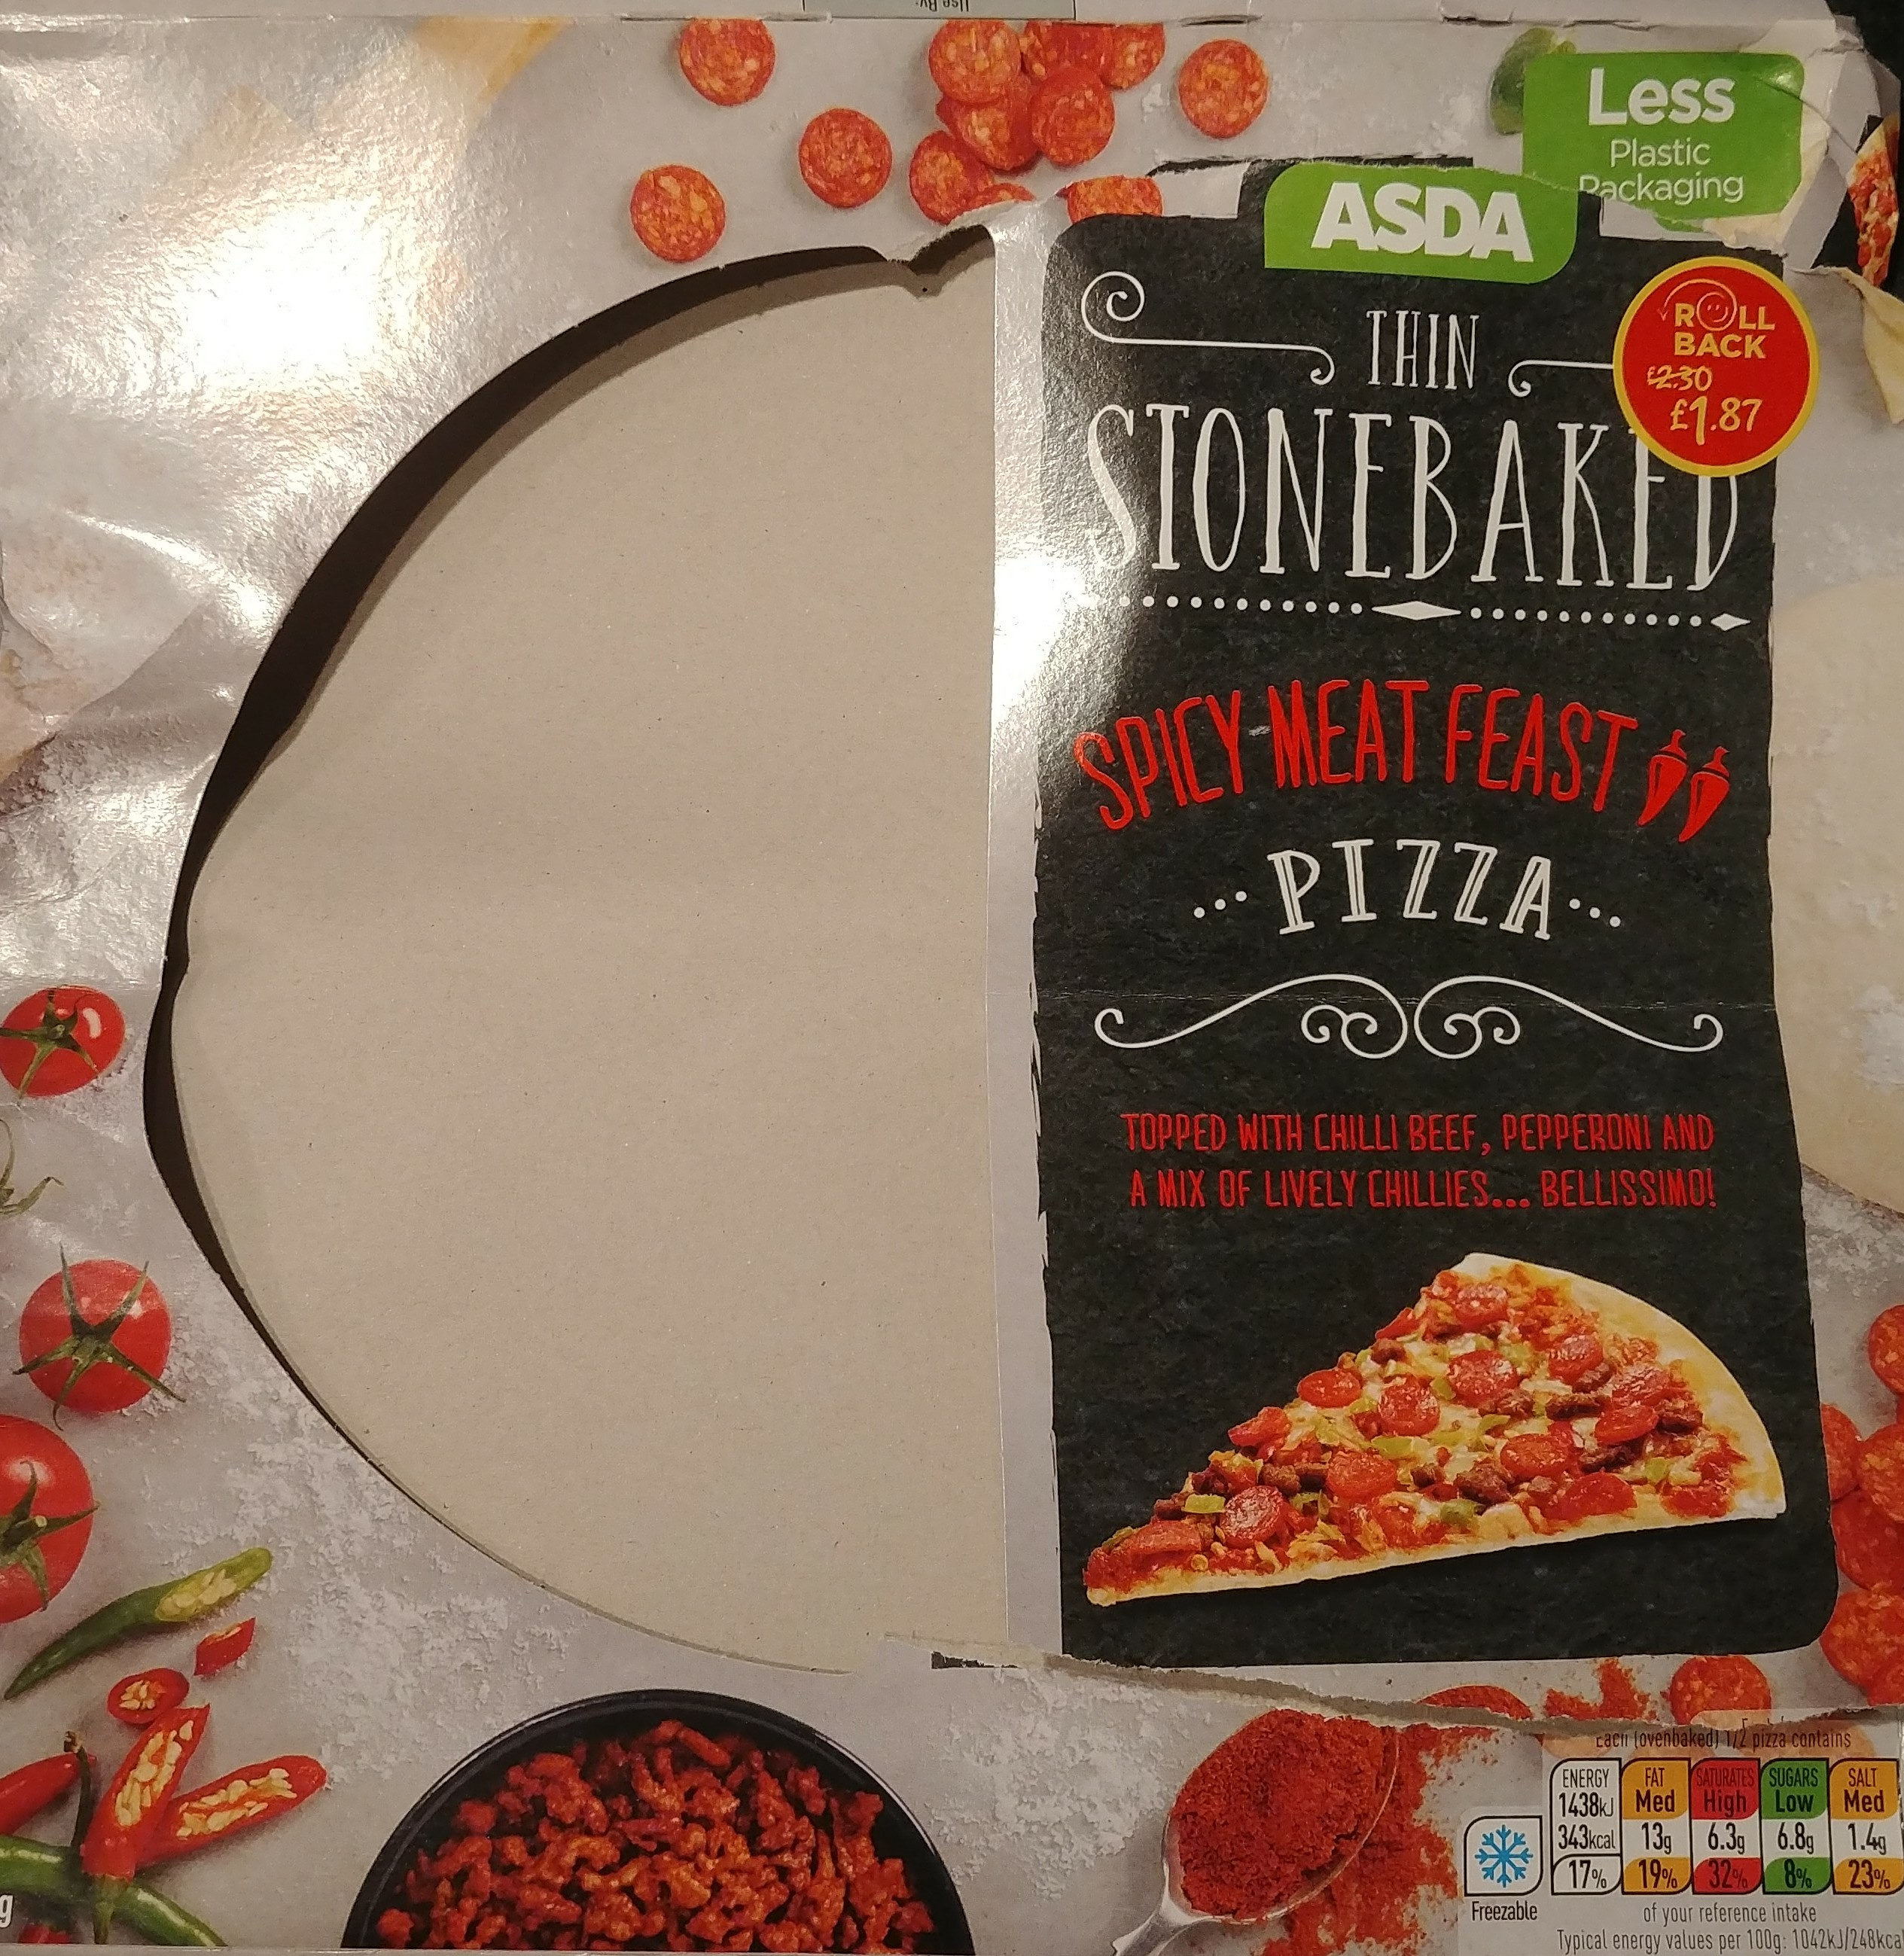 Thin Stonebaked Spicy Meat Feast Pizza - Produit